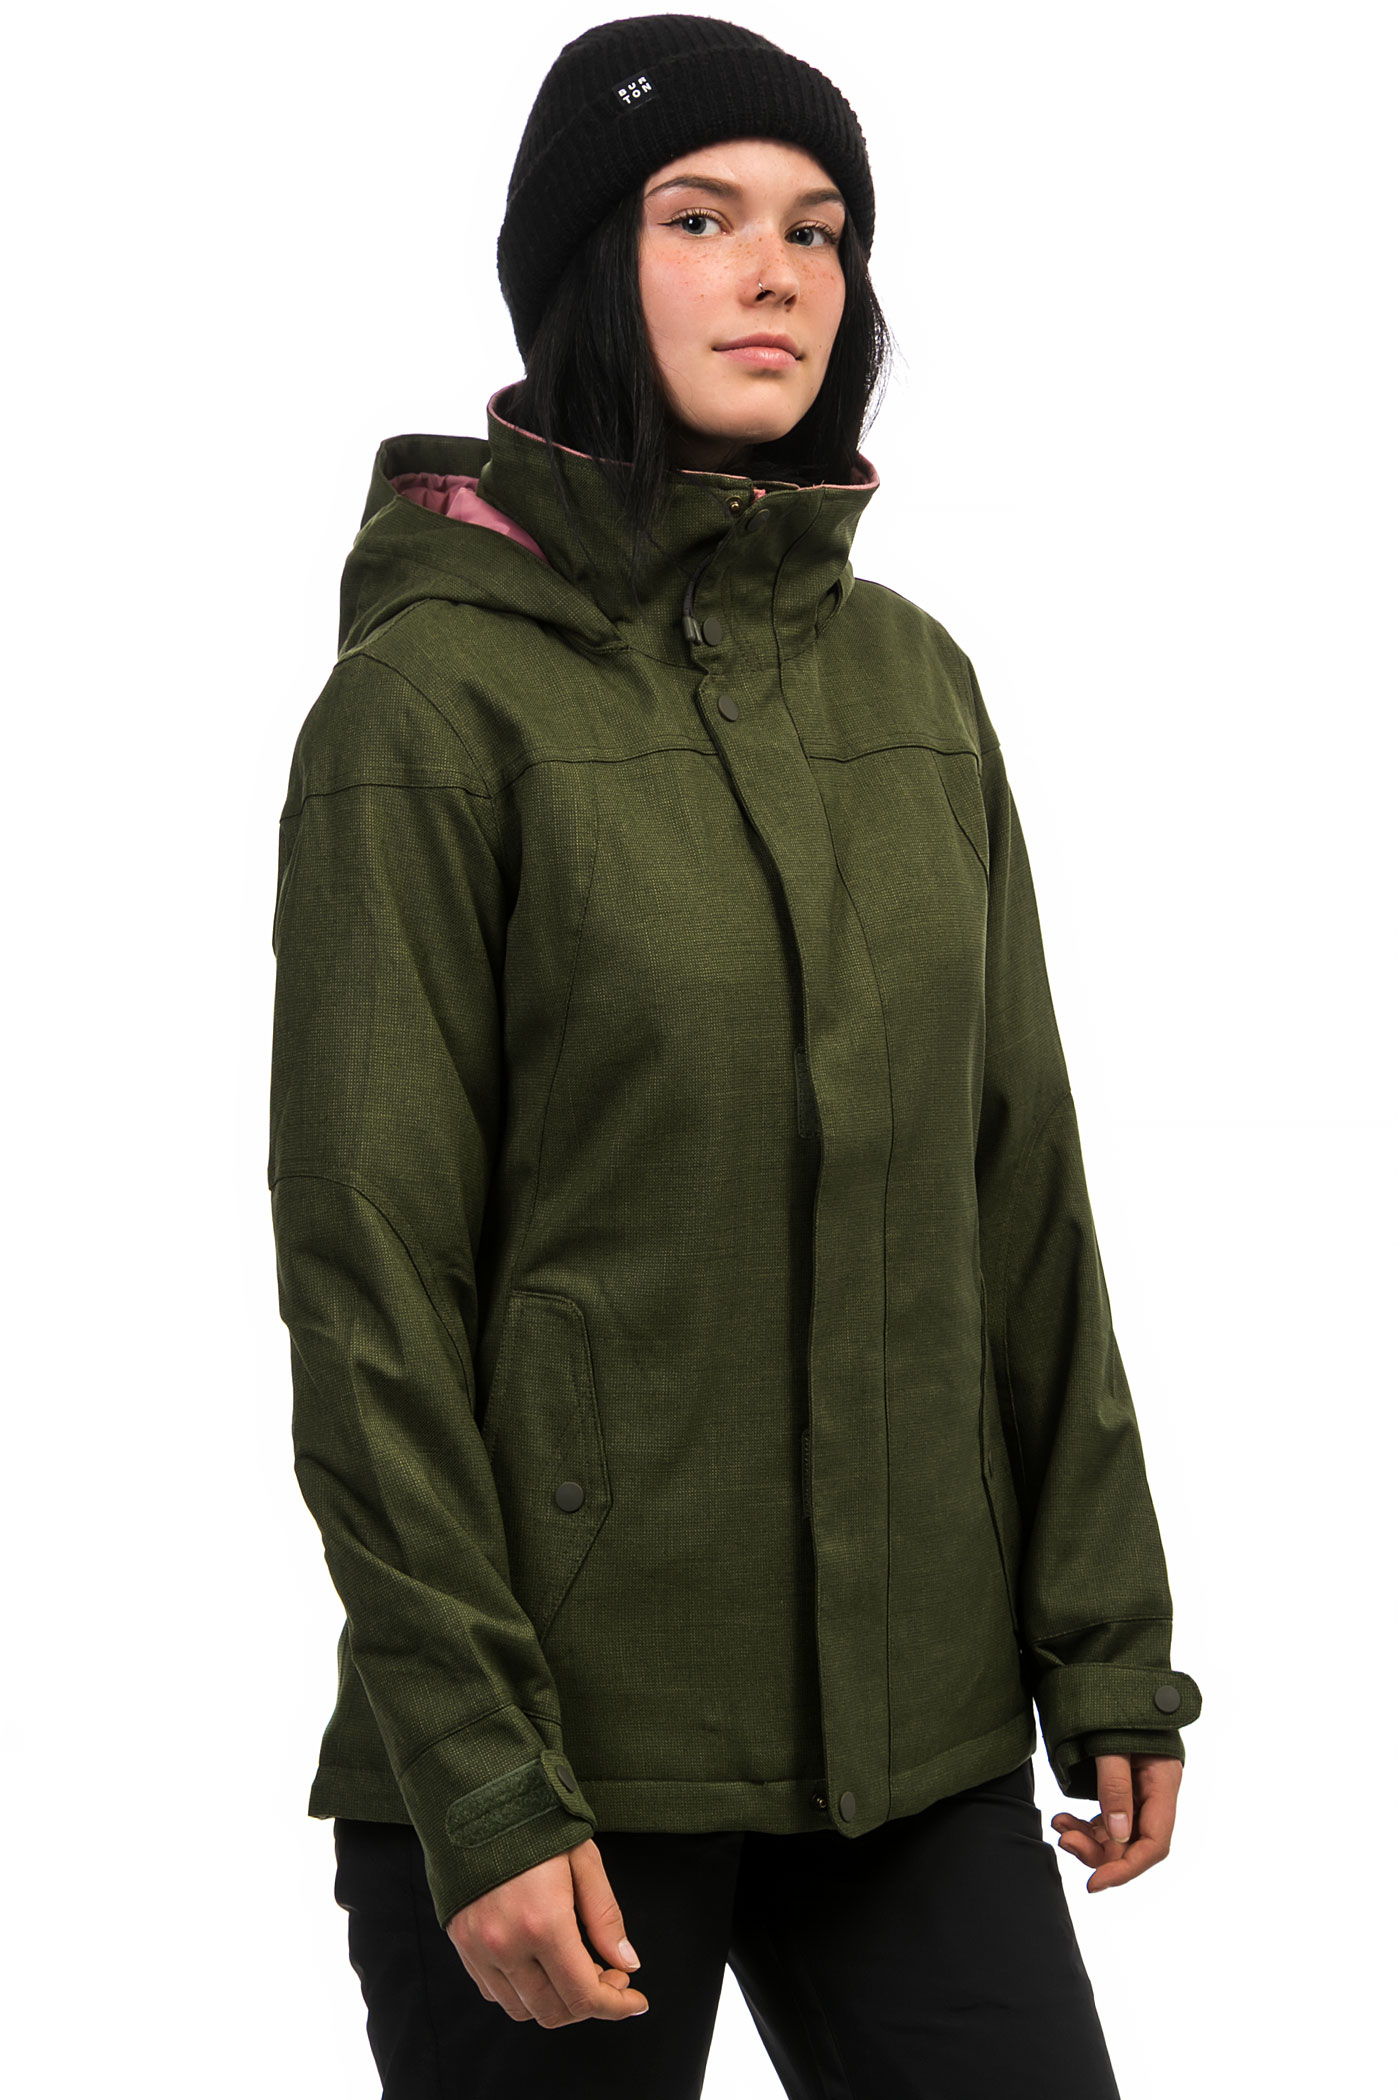 Burton Jet Set Snowboard Jacket women (rifle green) buy at skatedeluxe a6f44a1c83